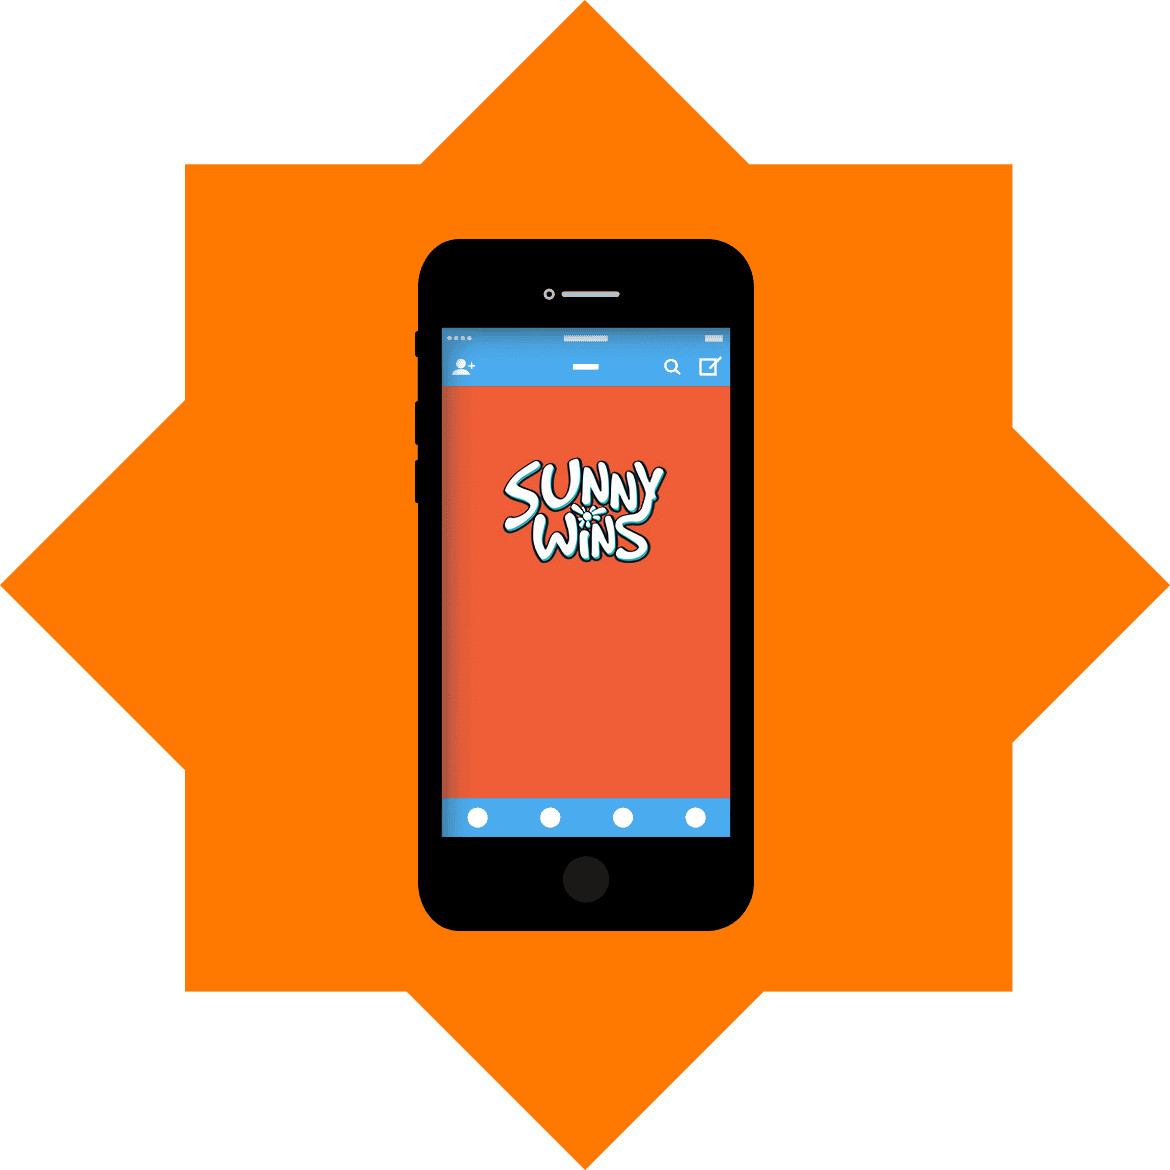 Sunny Wins - Mobile friendly